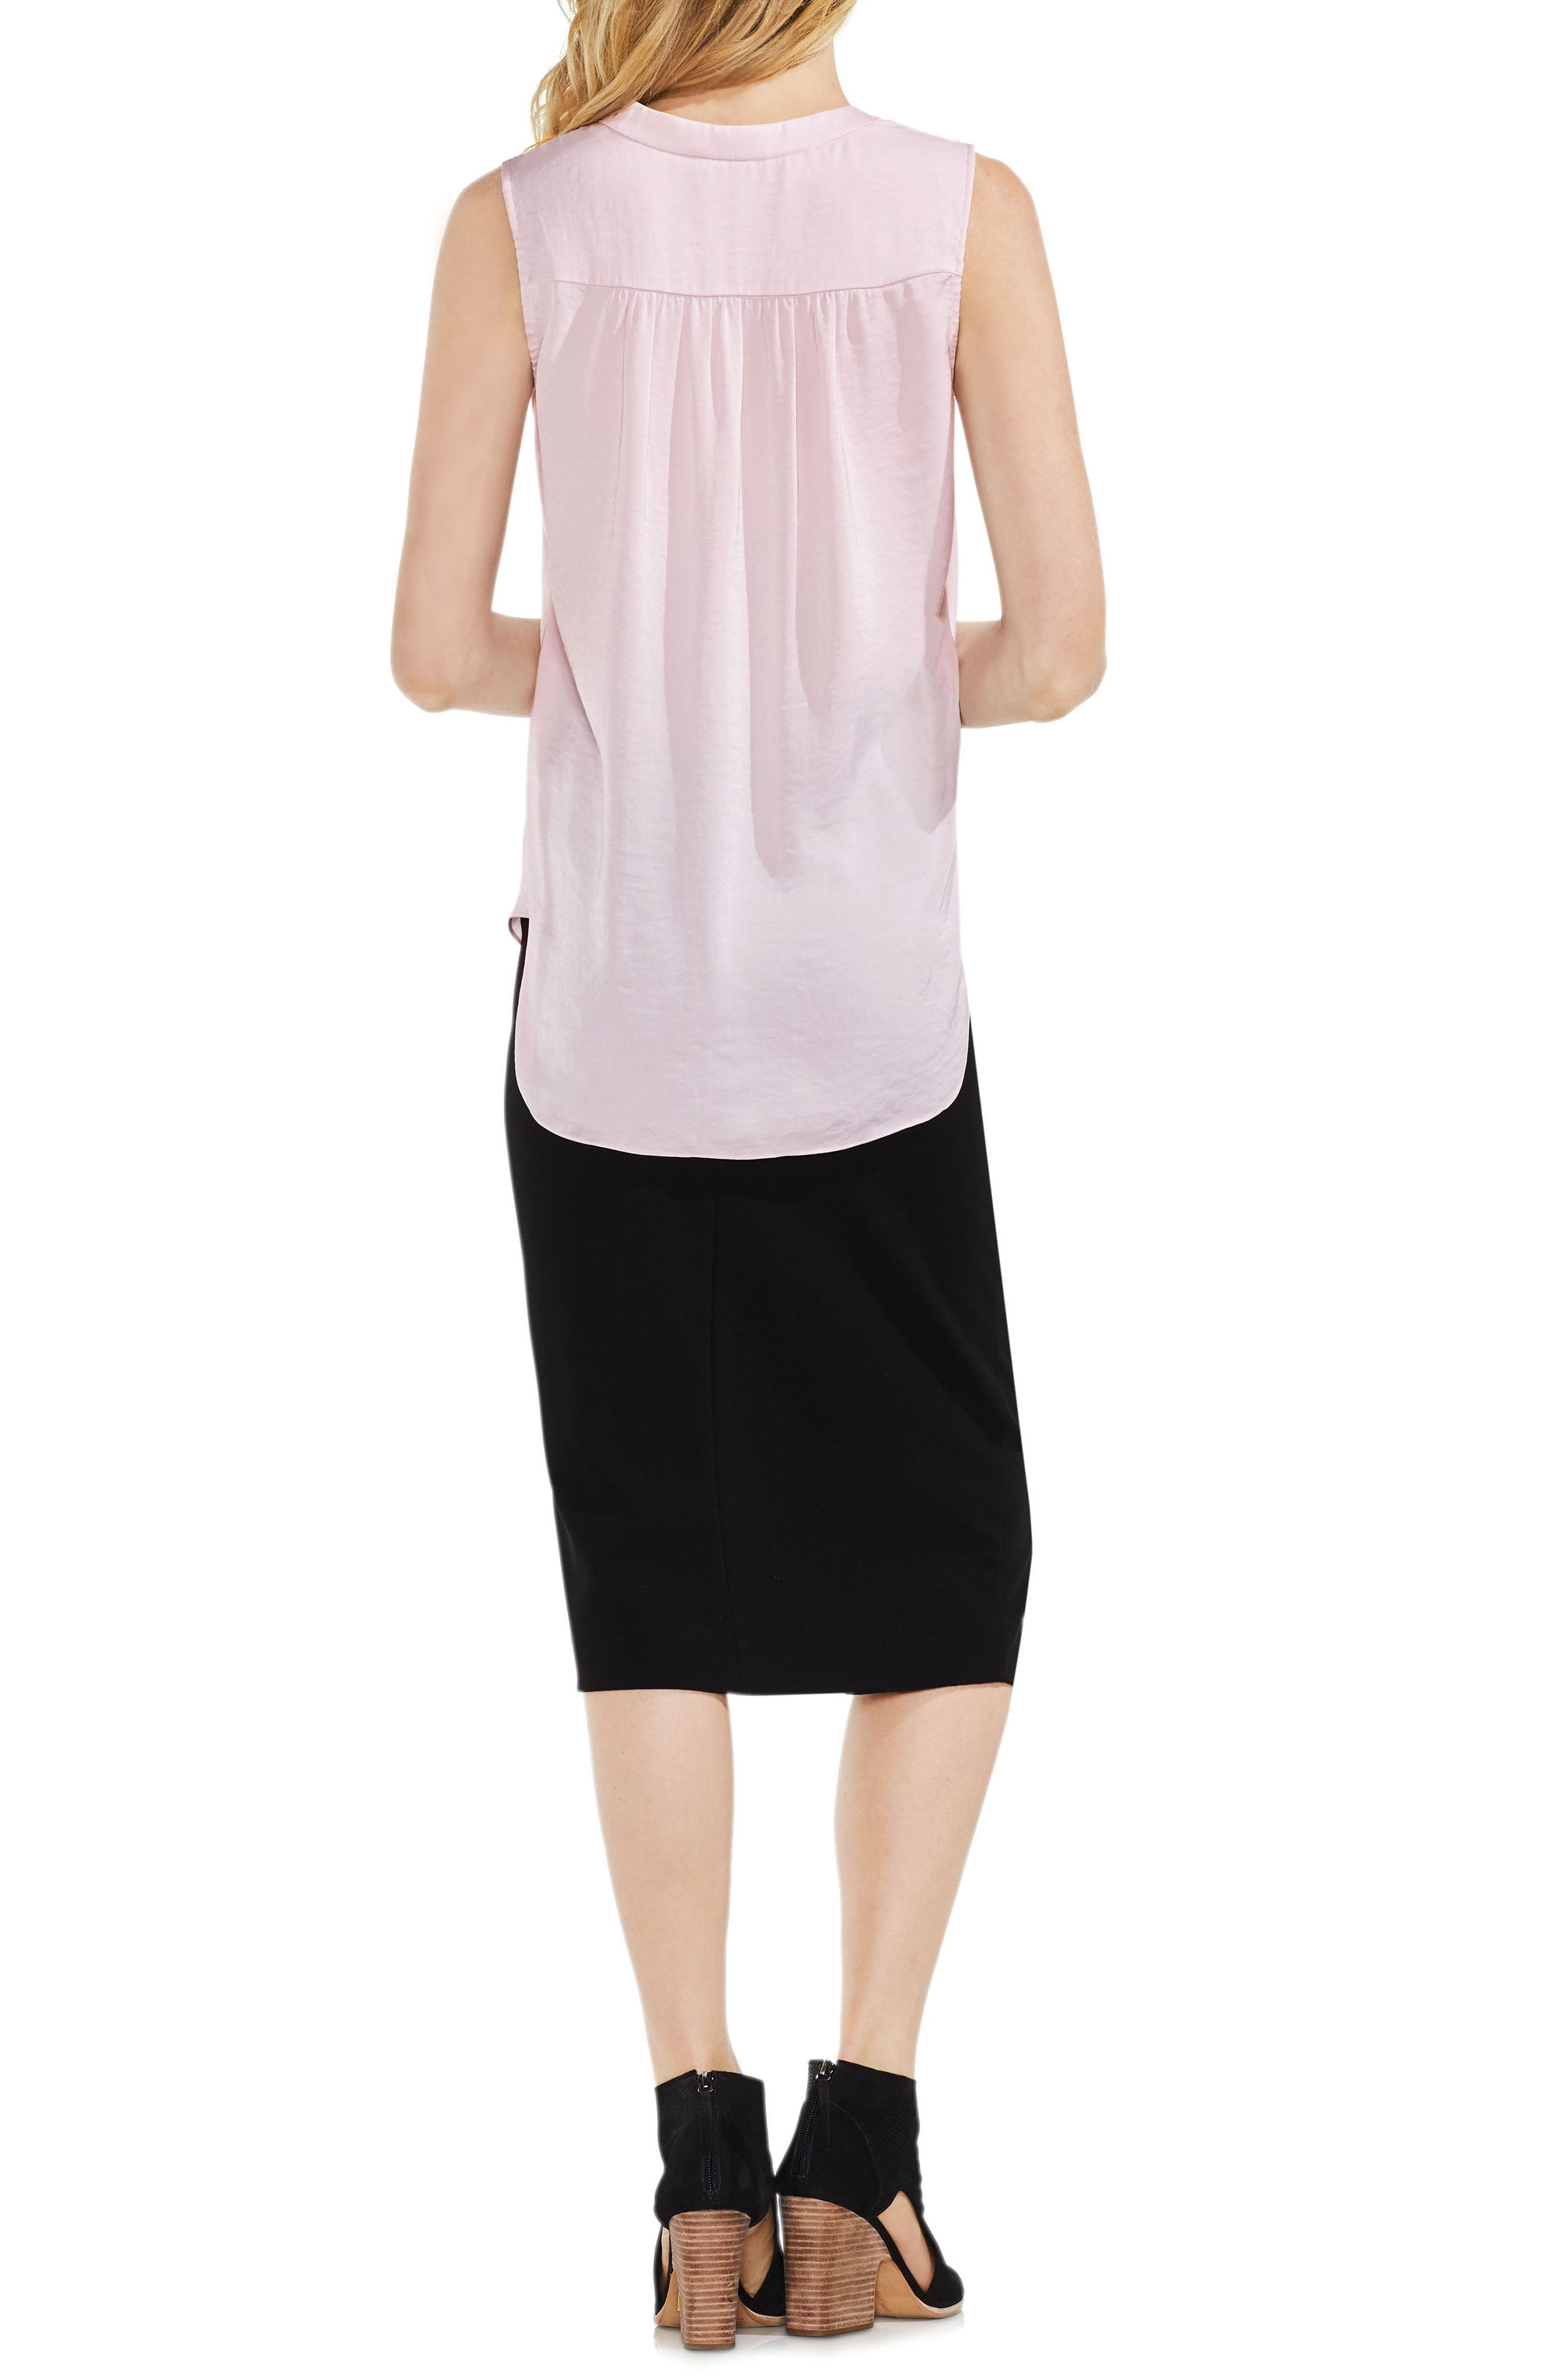 Rumpled Satin Blouse,                             Alternate thumbnail 4, color,                             Pink Bliss